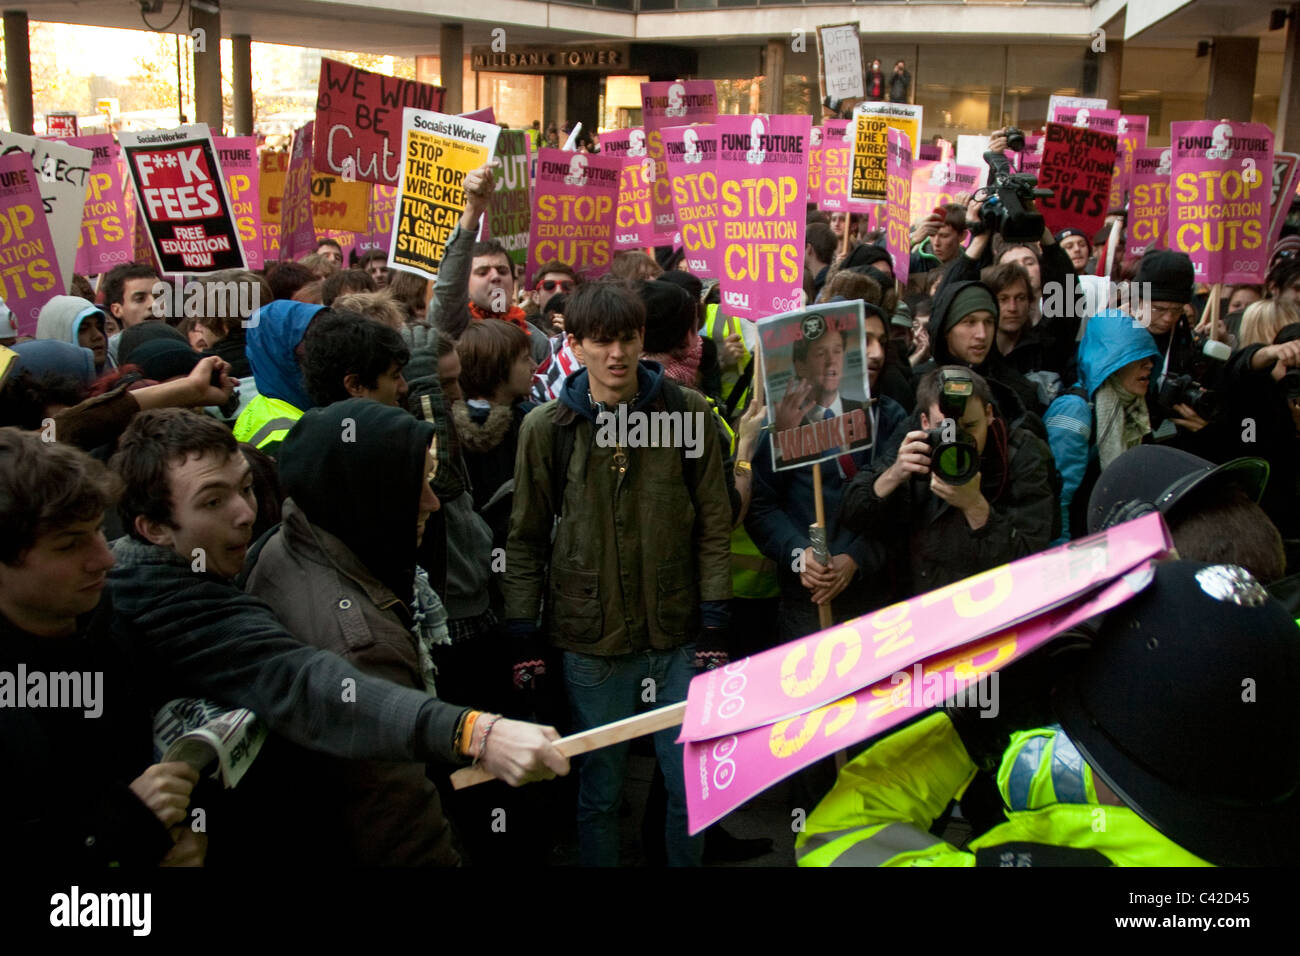 A hits police officers with a placard during the first London student protest in November 2010. - Stock Image